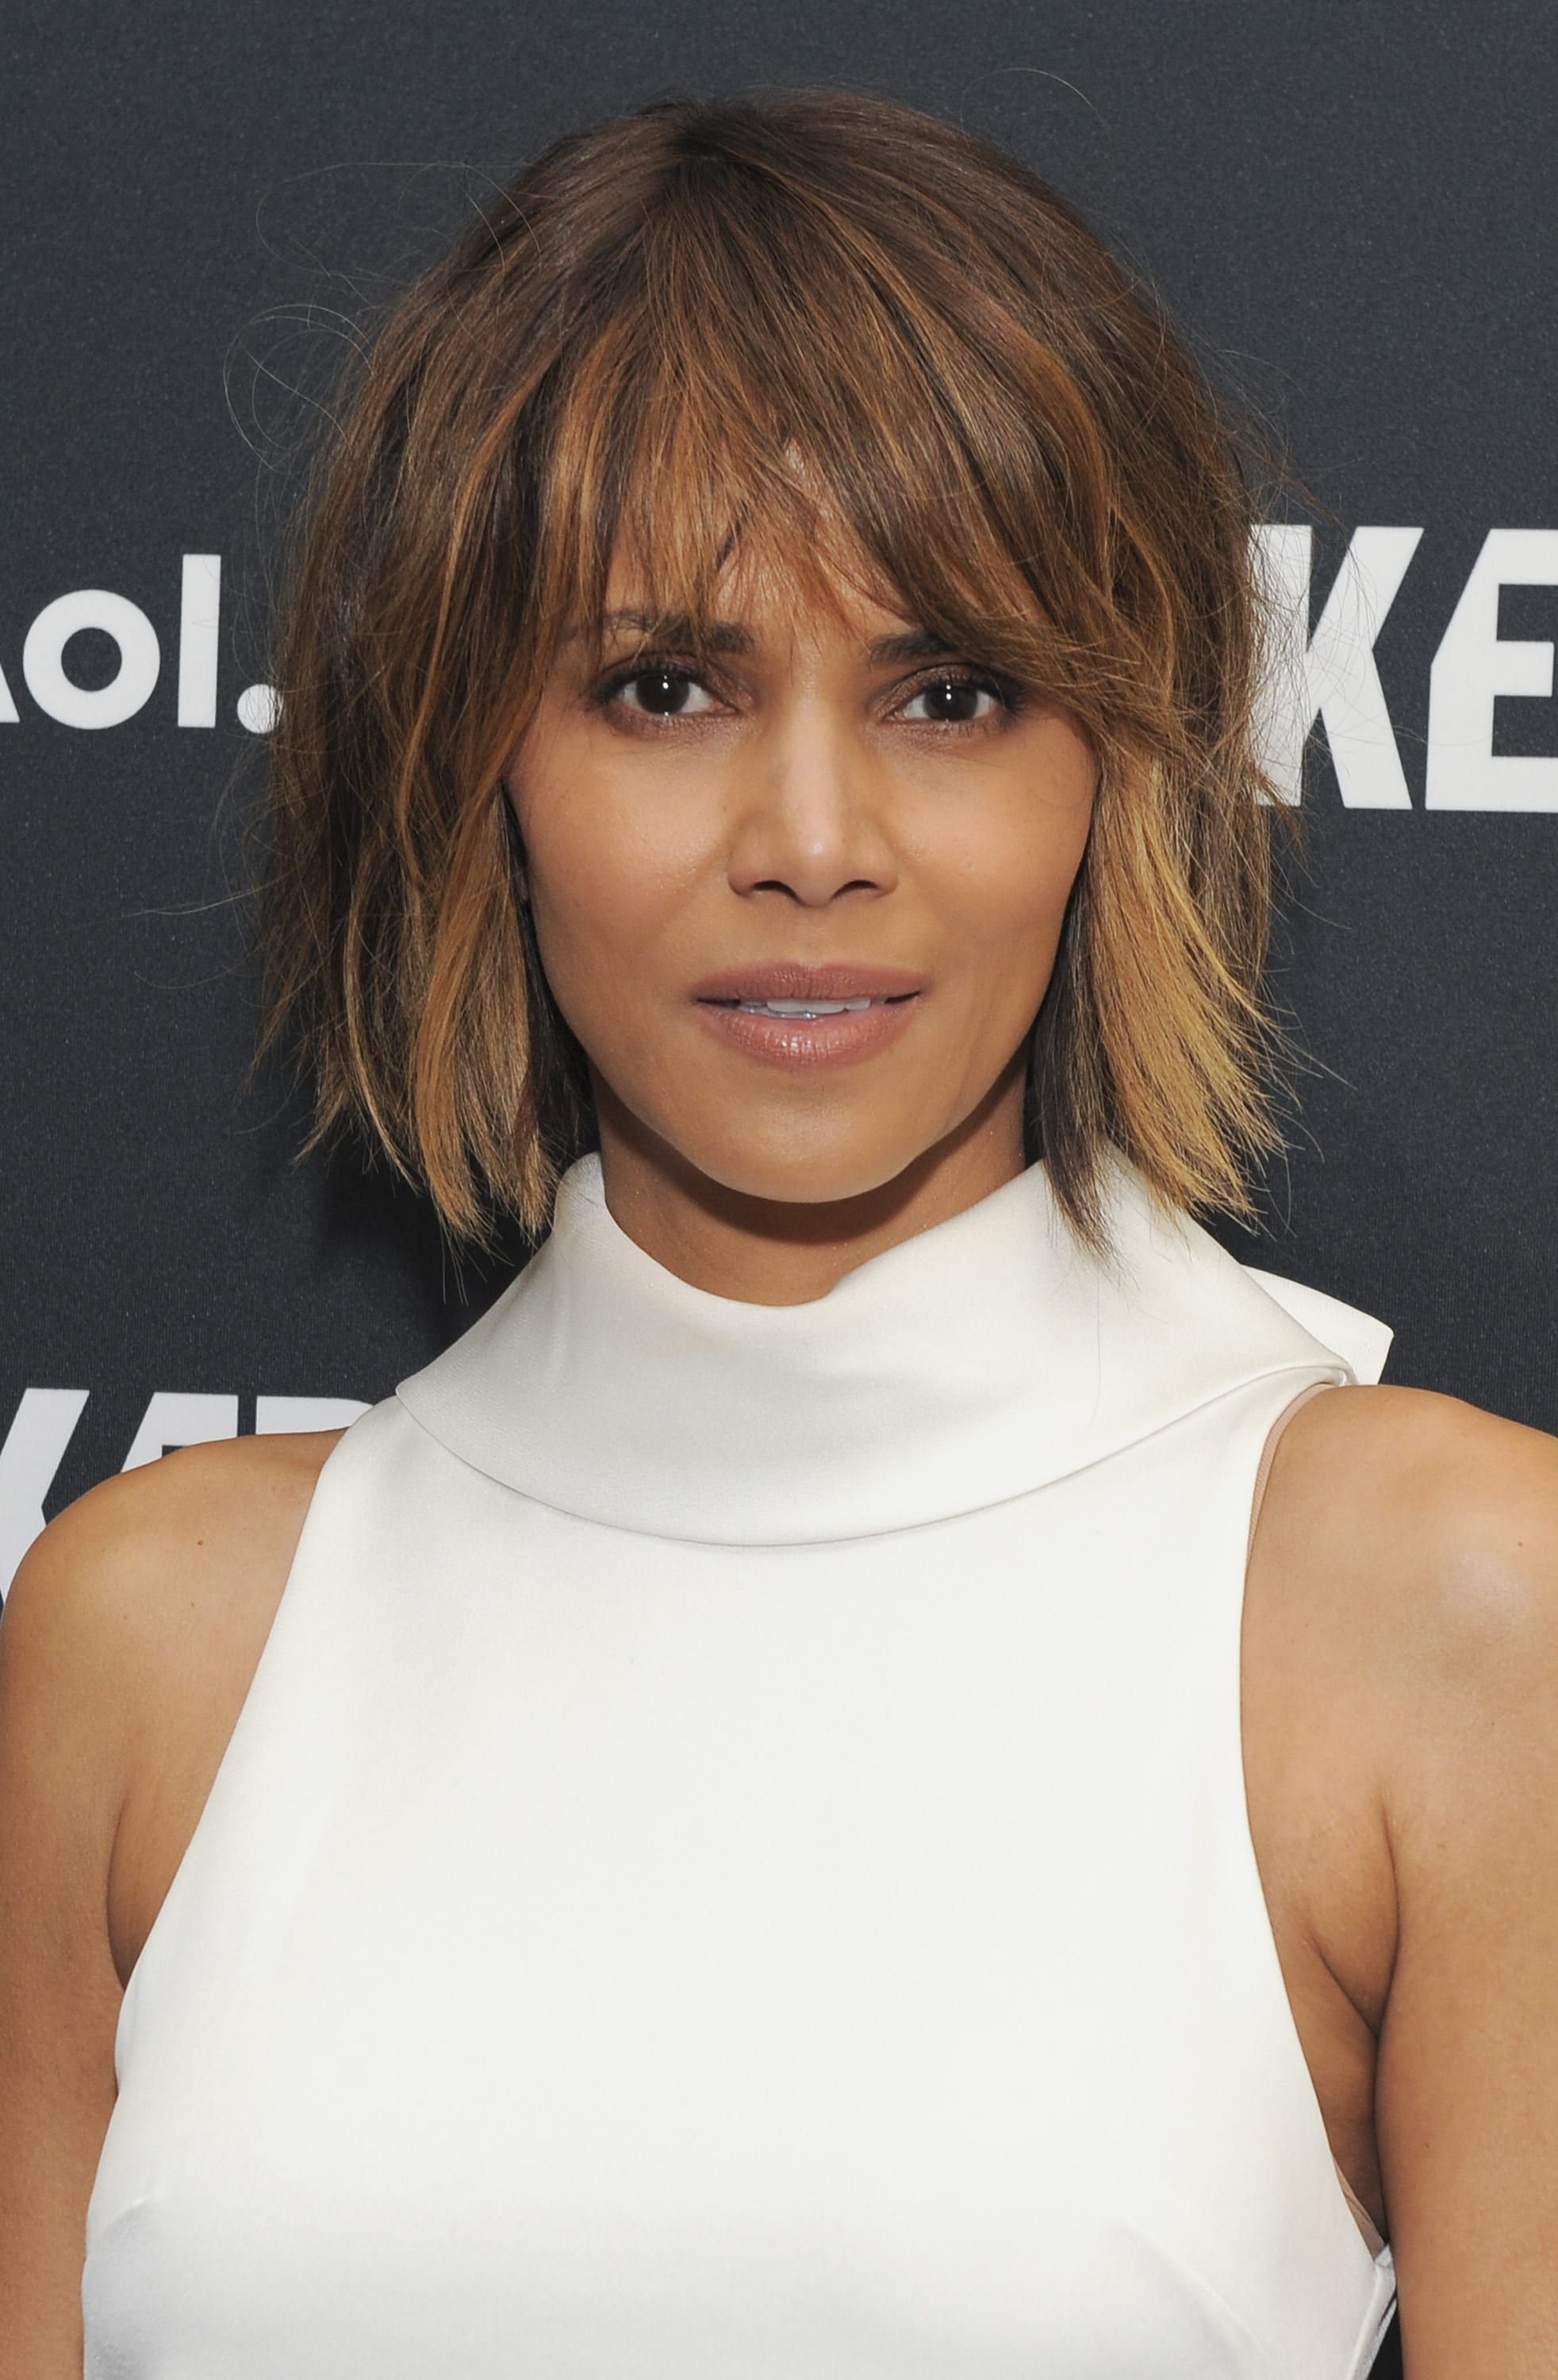 64 Short Hairstyles That Will Make You Want To Chop It All Off